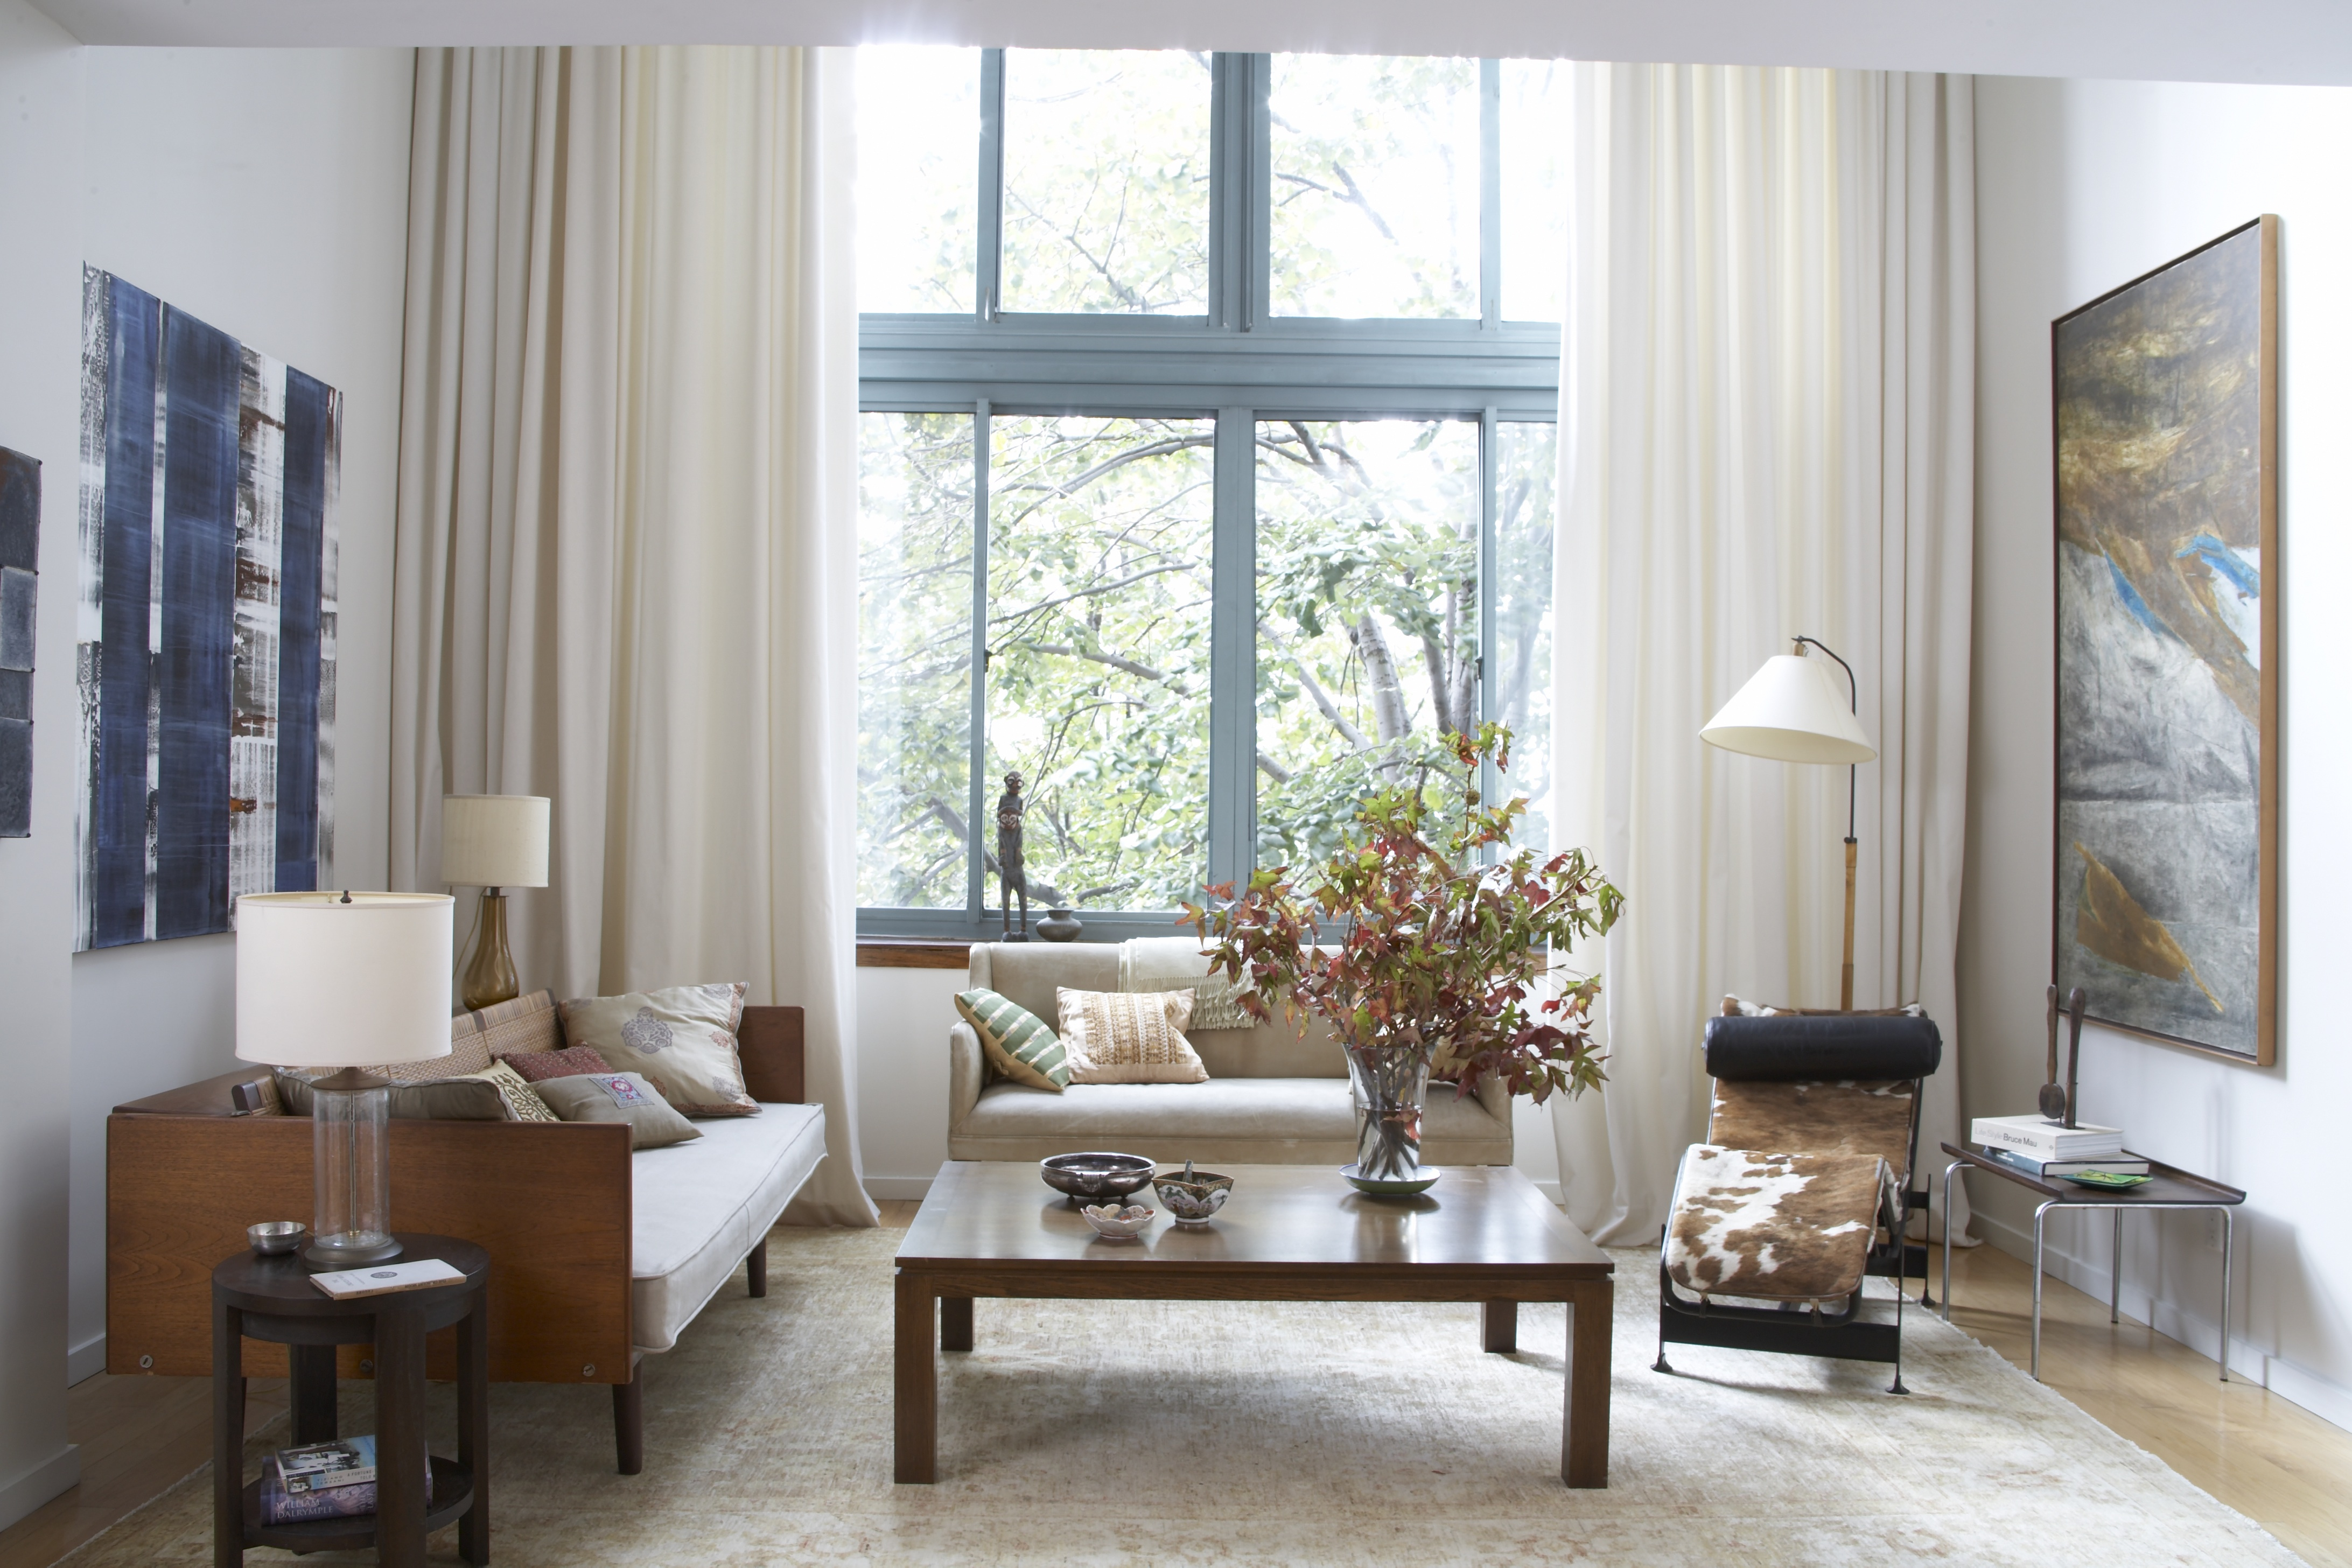 4 Curtains That Will Keep Your Home Breezy Without Breaking